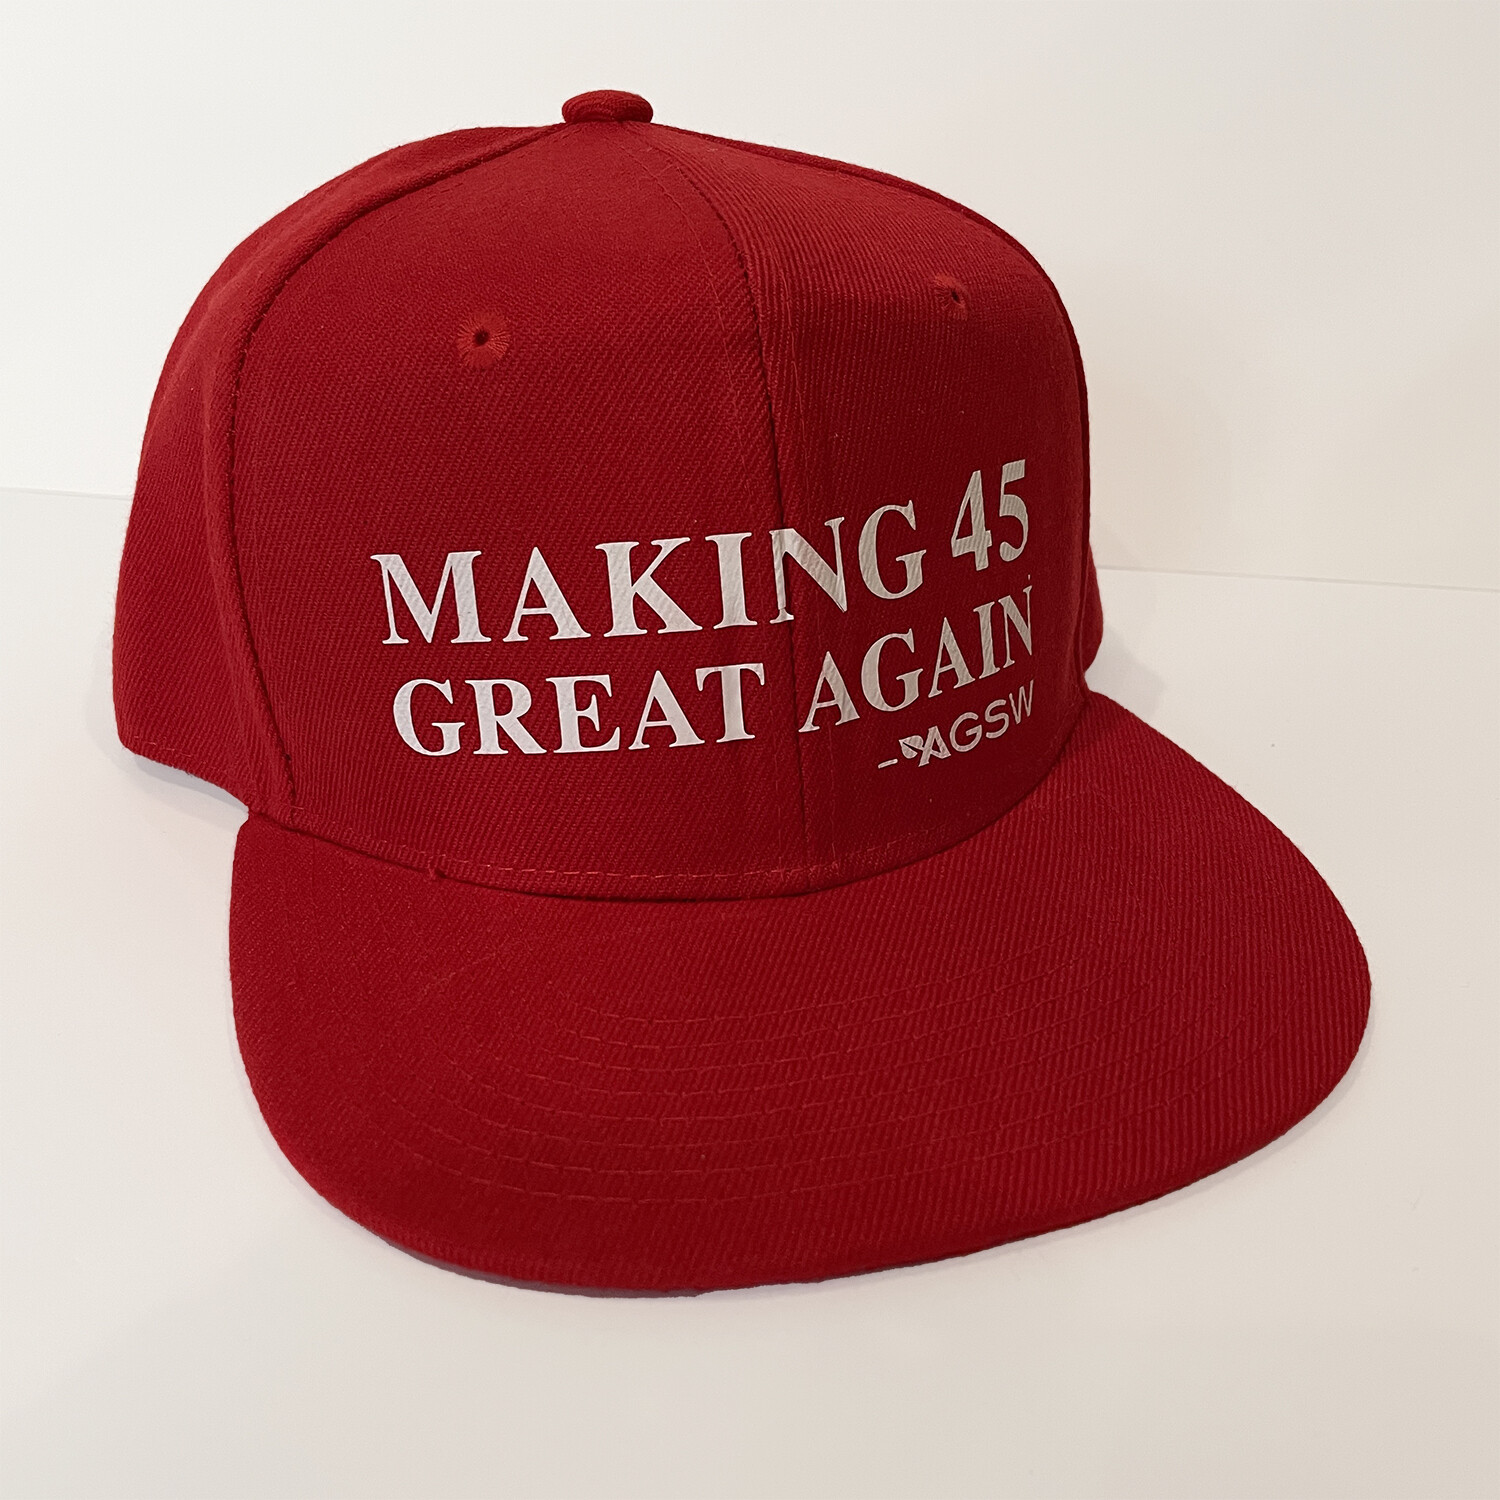 Making the number 45 Great Again Hat